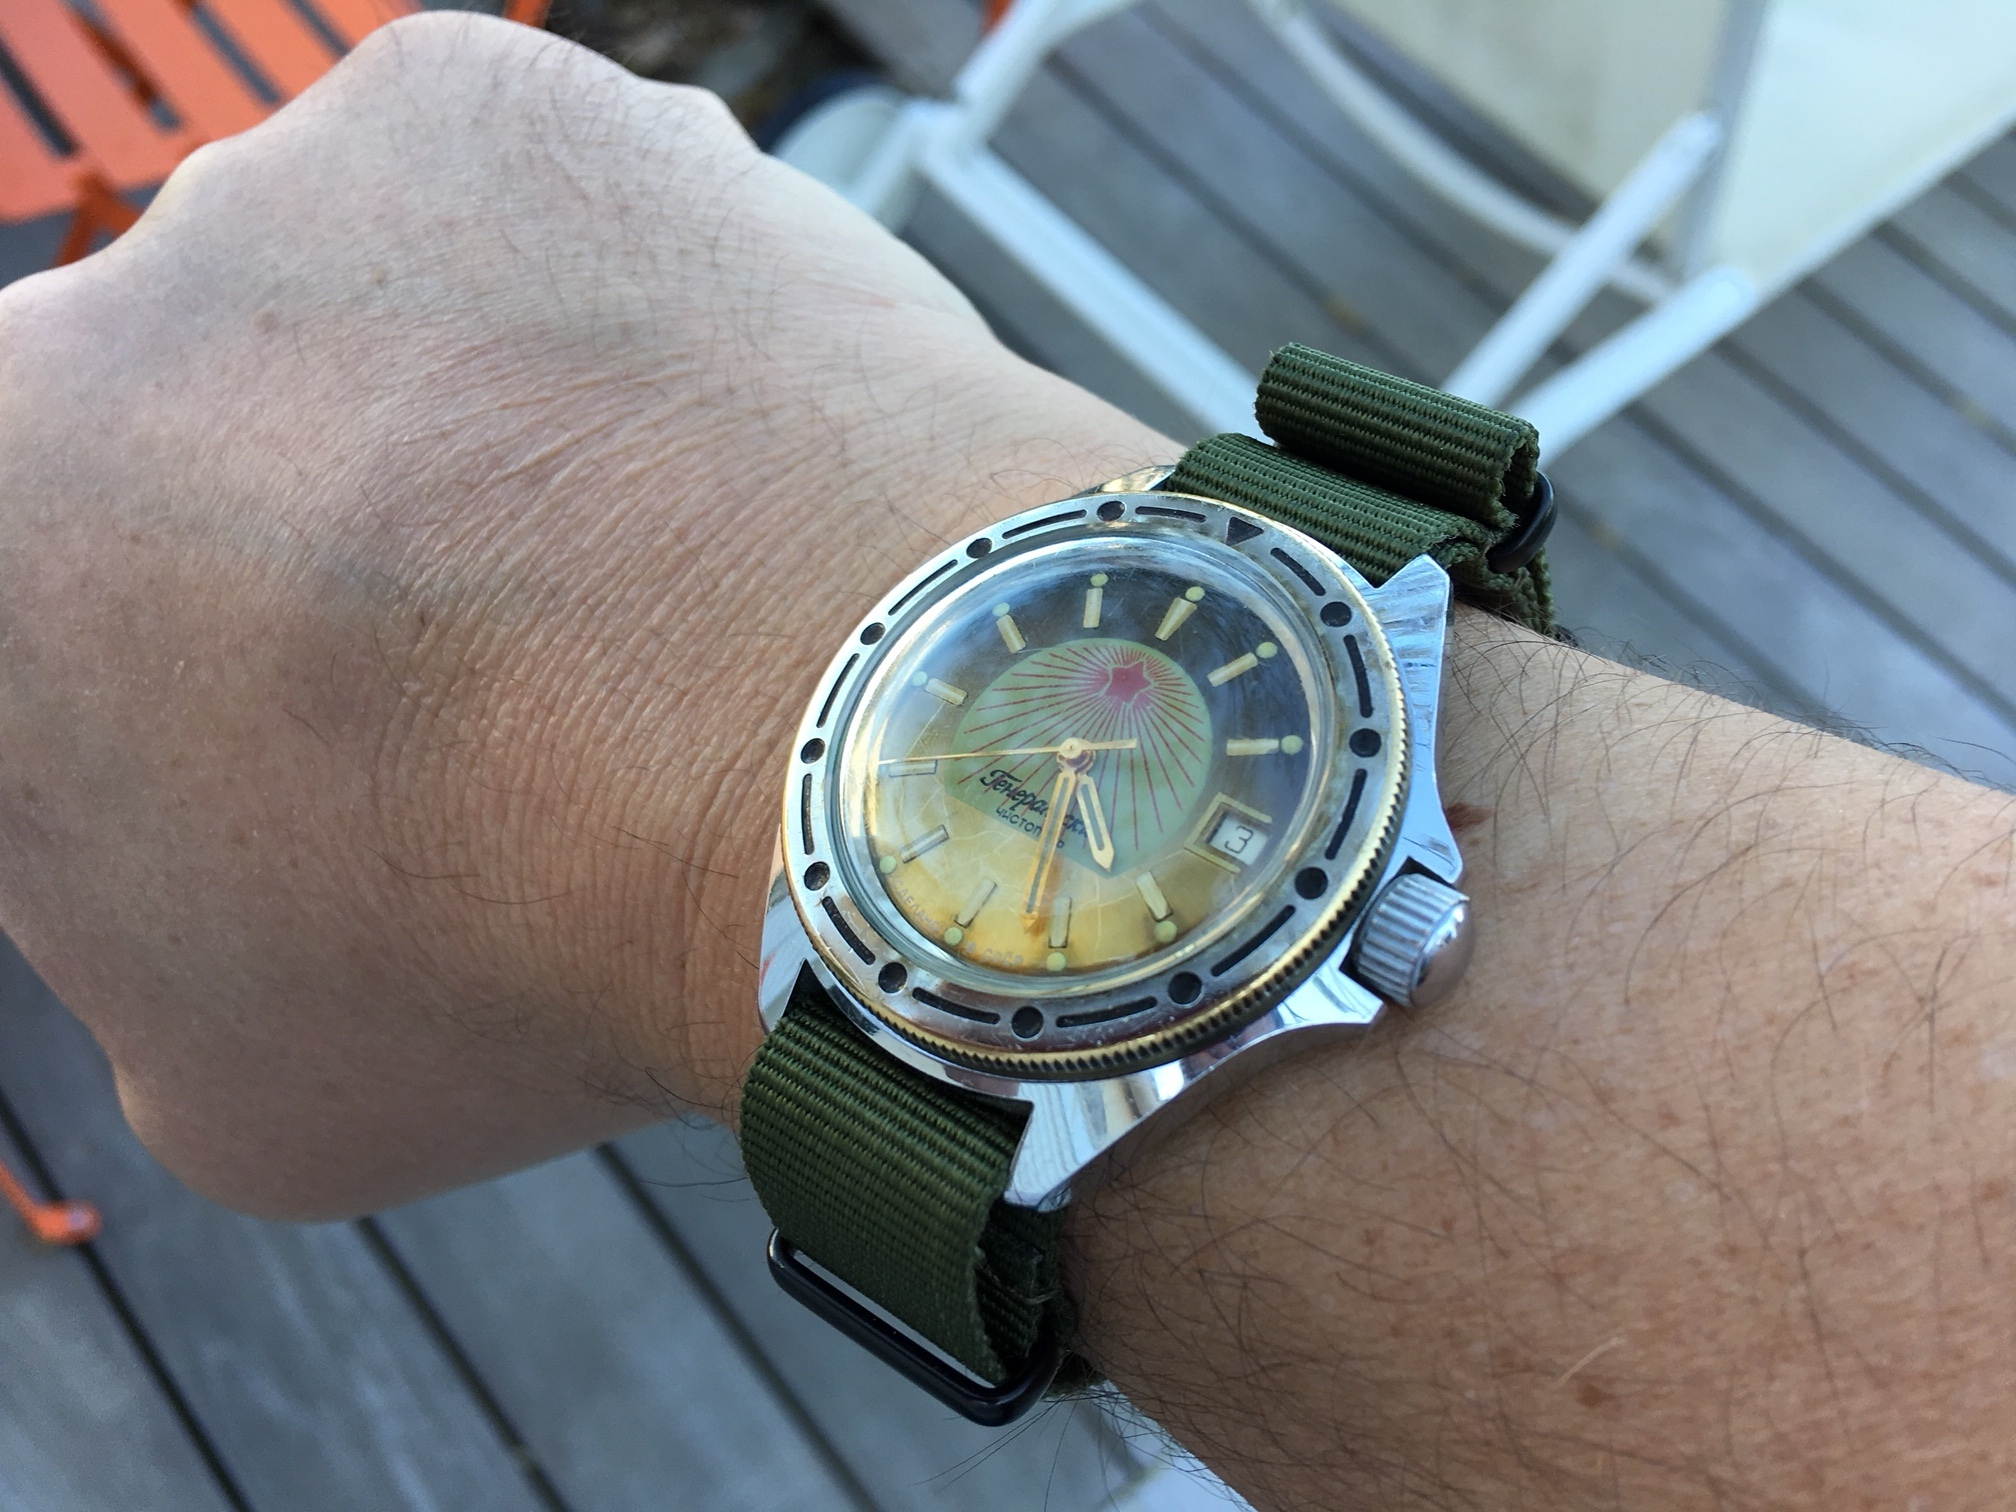 vostok rising sun red star CHIR - Page 12 190329072657789041